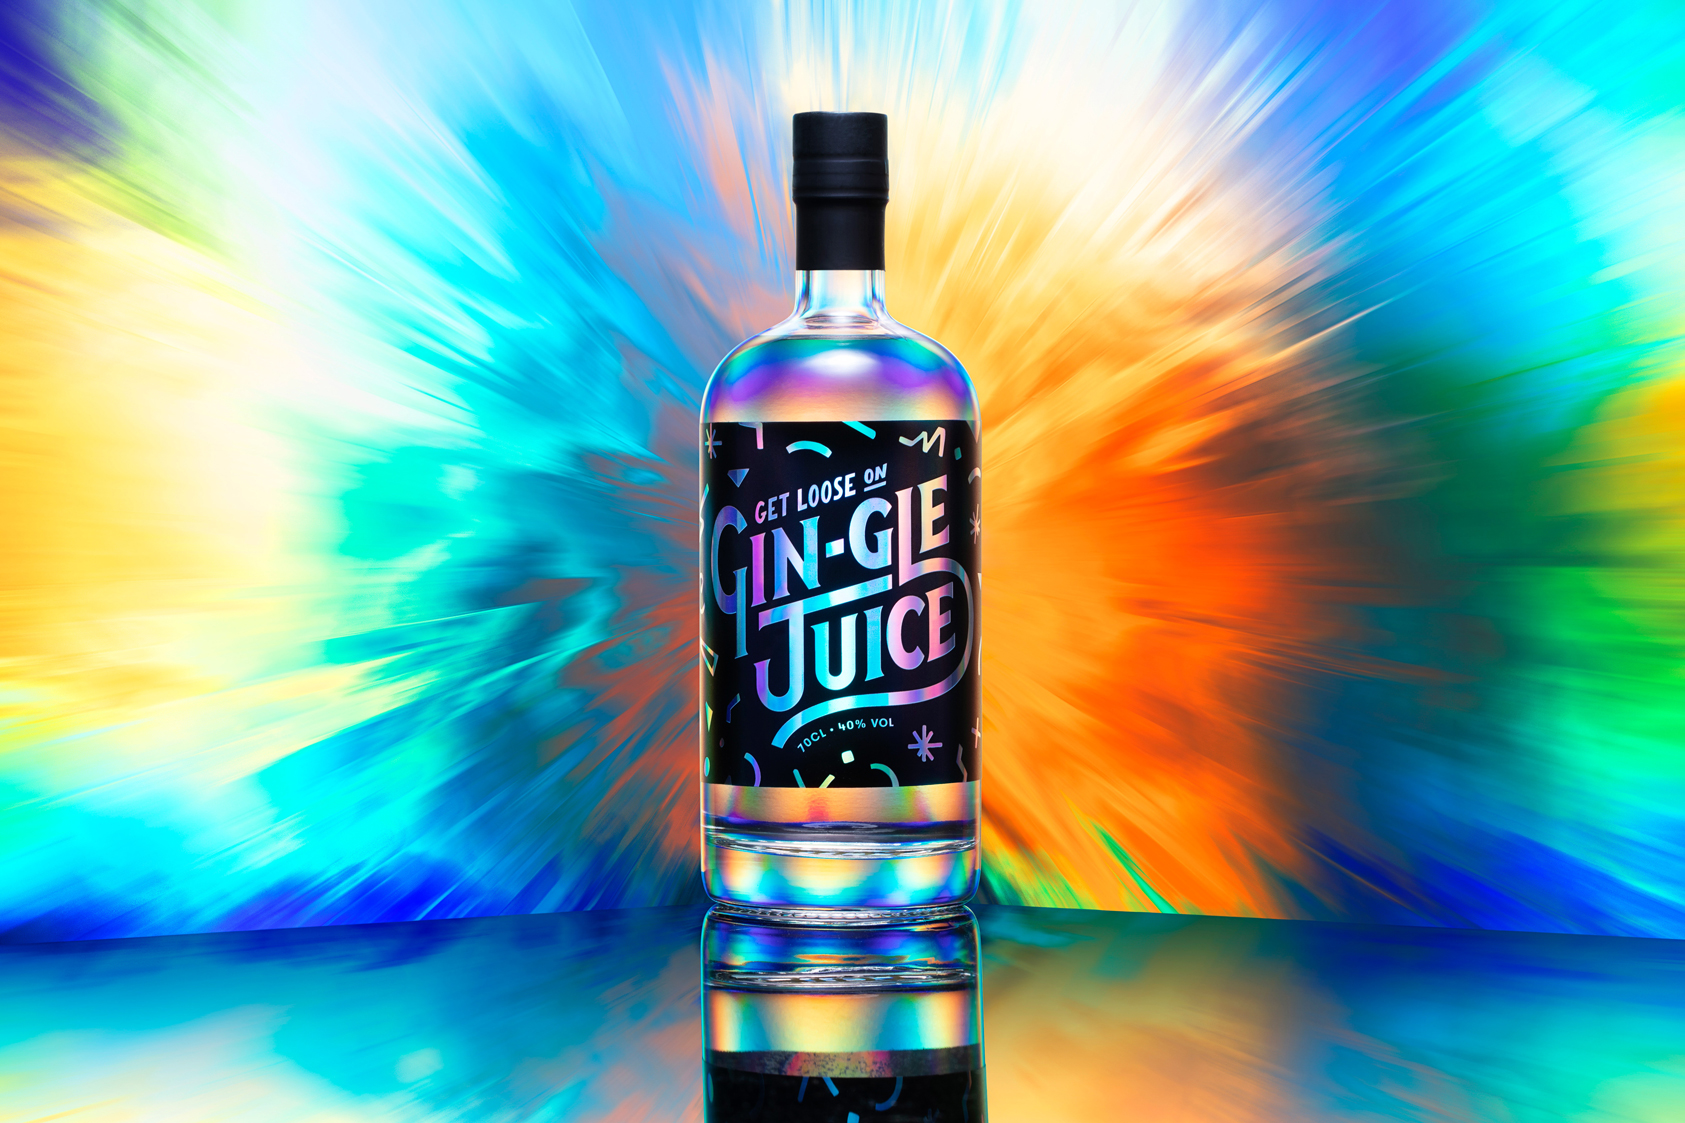 Agency Decides to Get Loose with Gin-gle Juice as Thank You to Clients